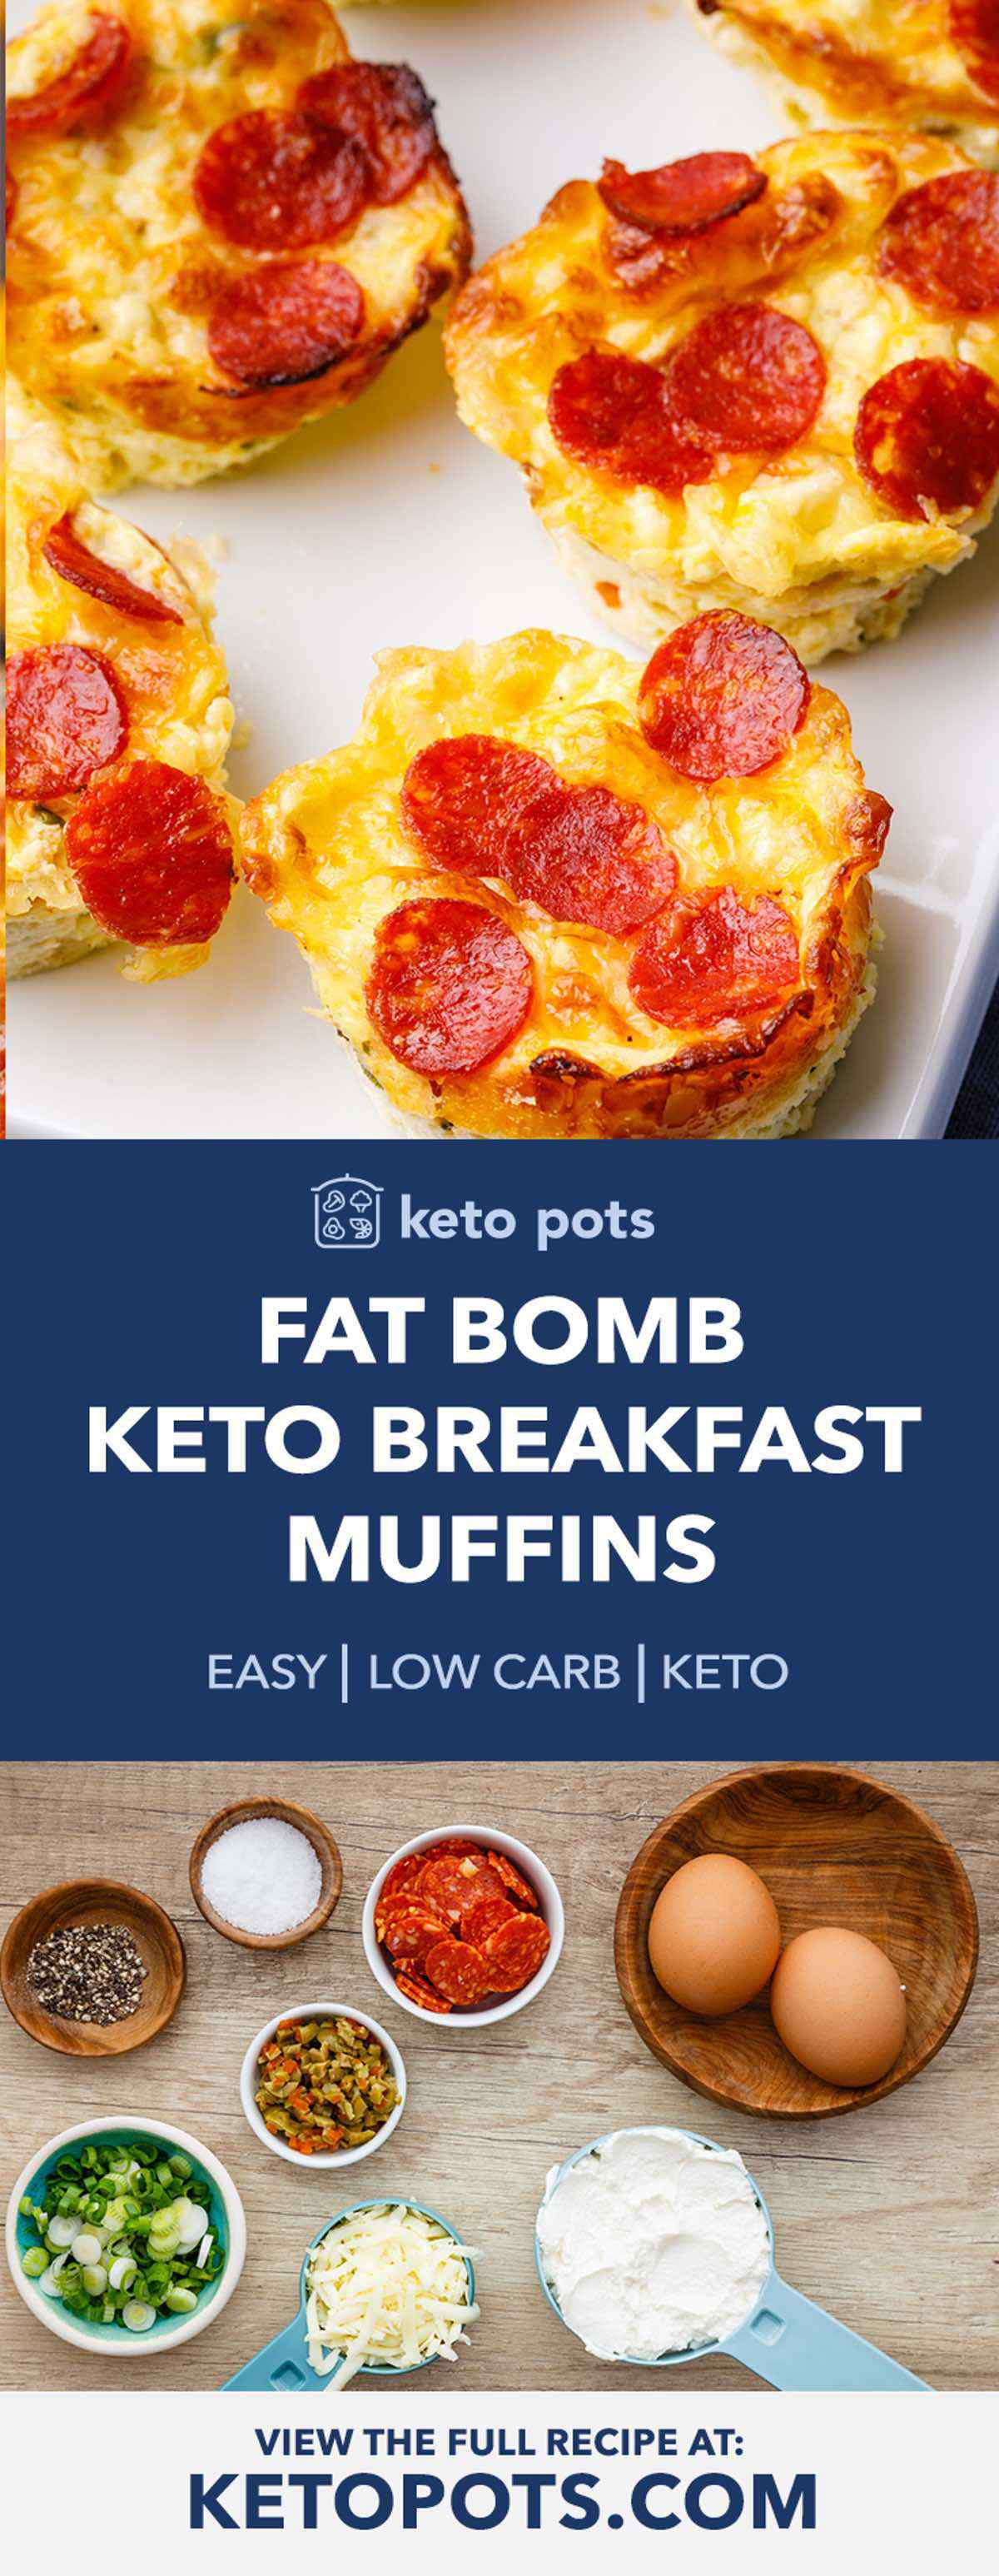 Fat Bomb Keto Breakfast Muffins